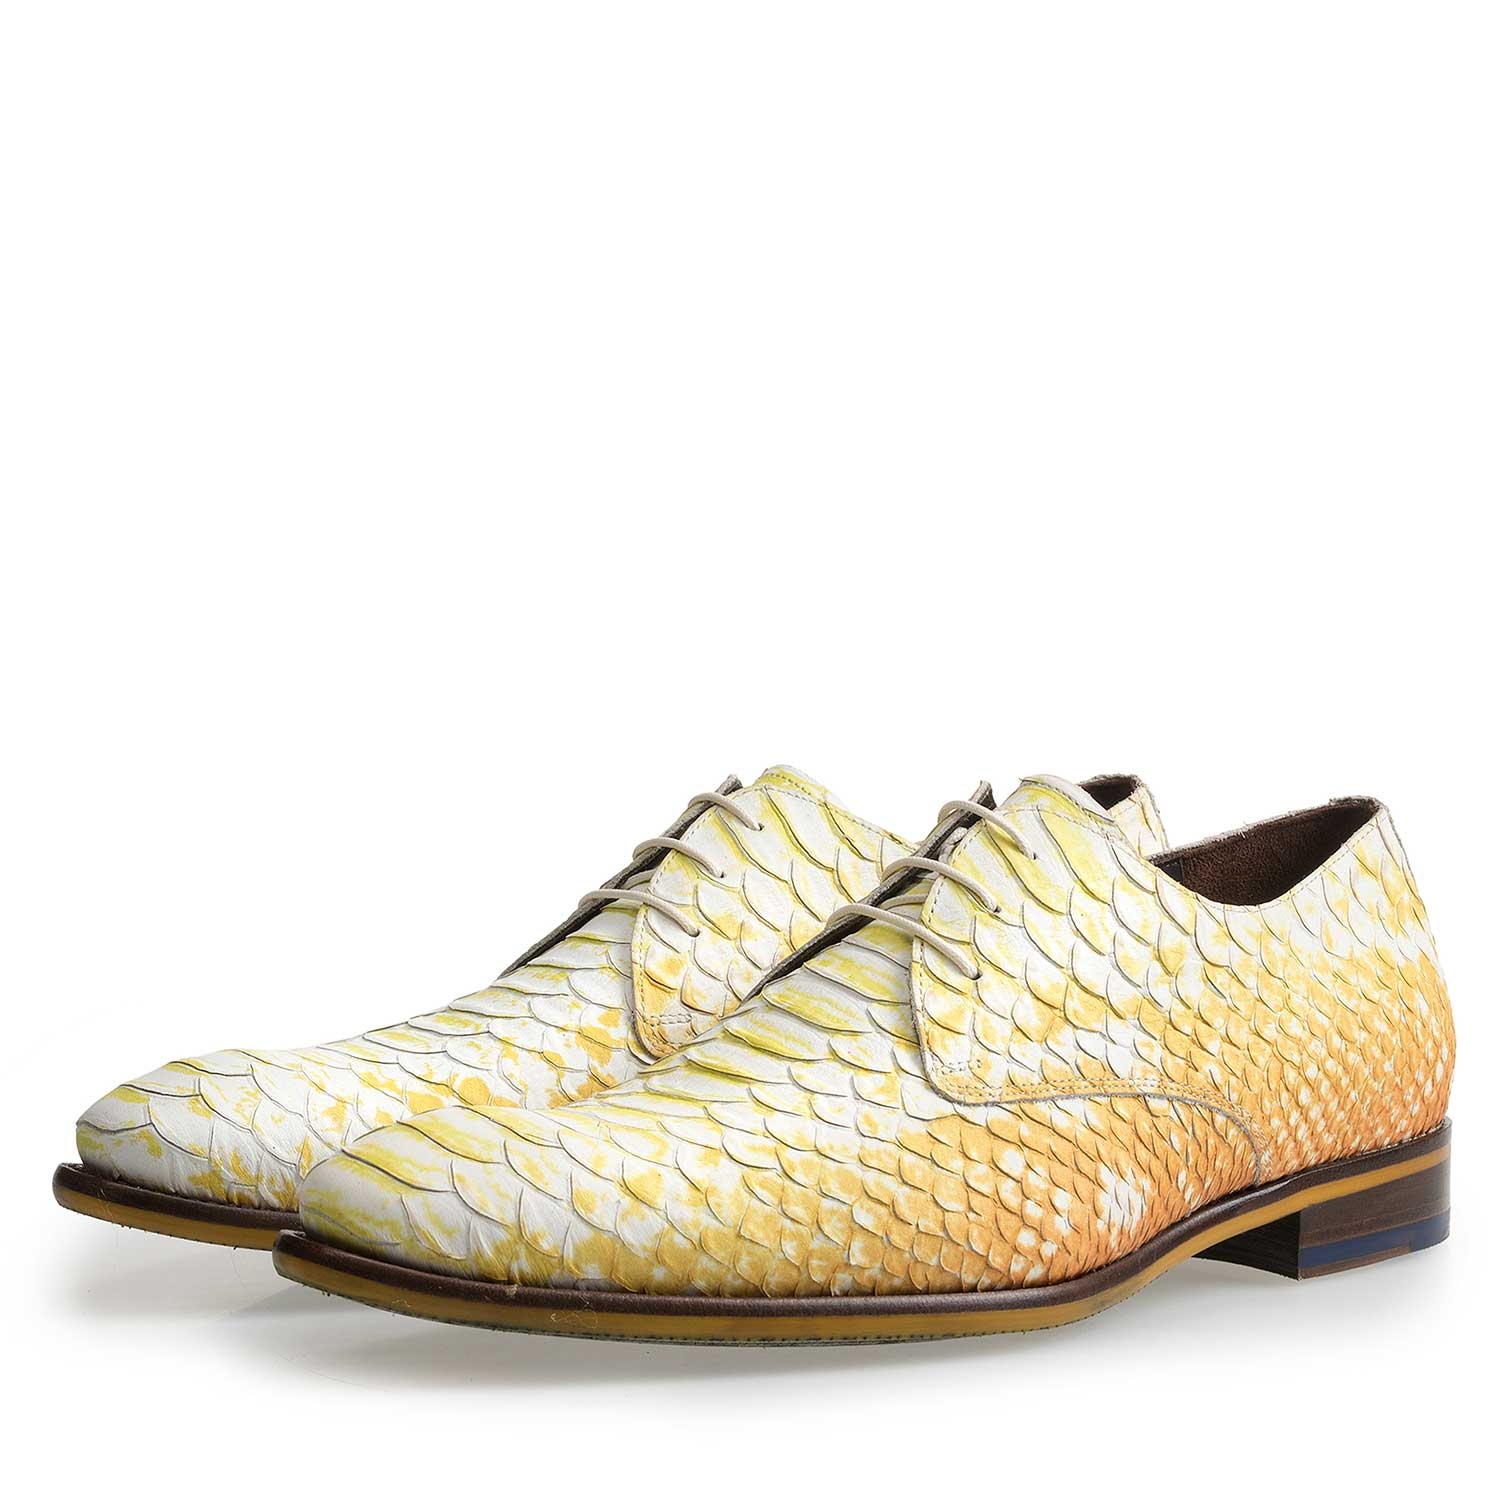 14109/01 - Yellow leather lace-shoe with snake-print